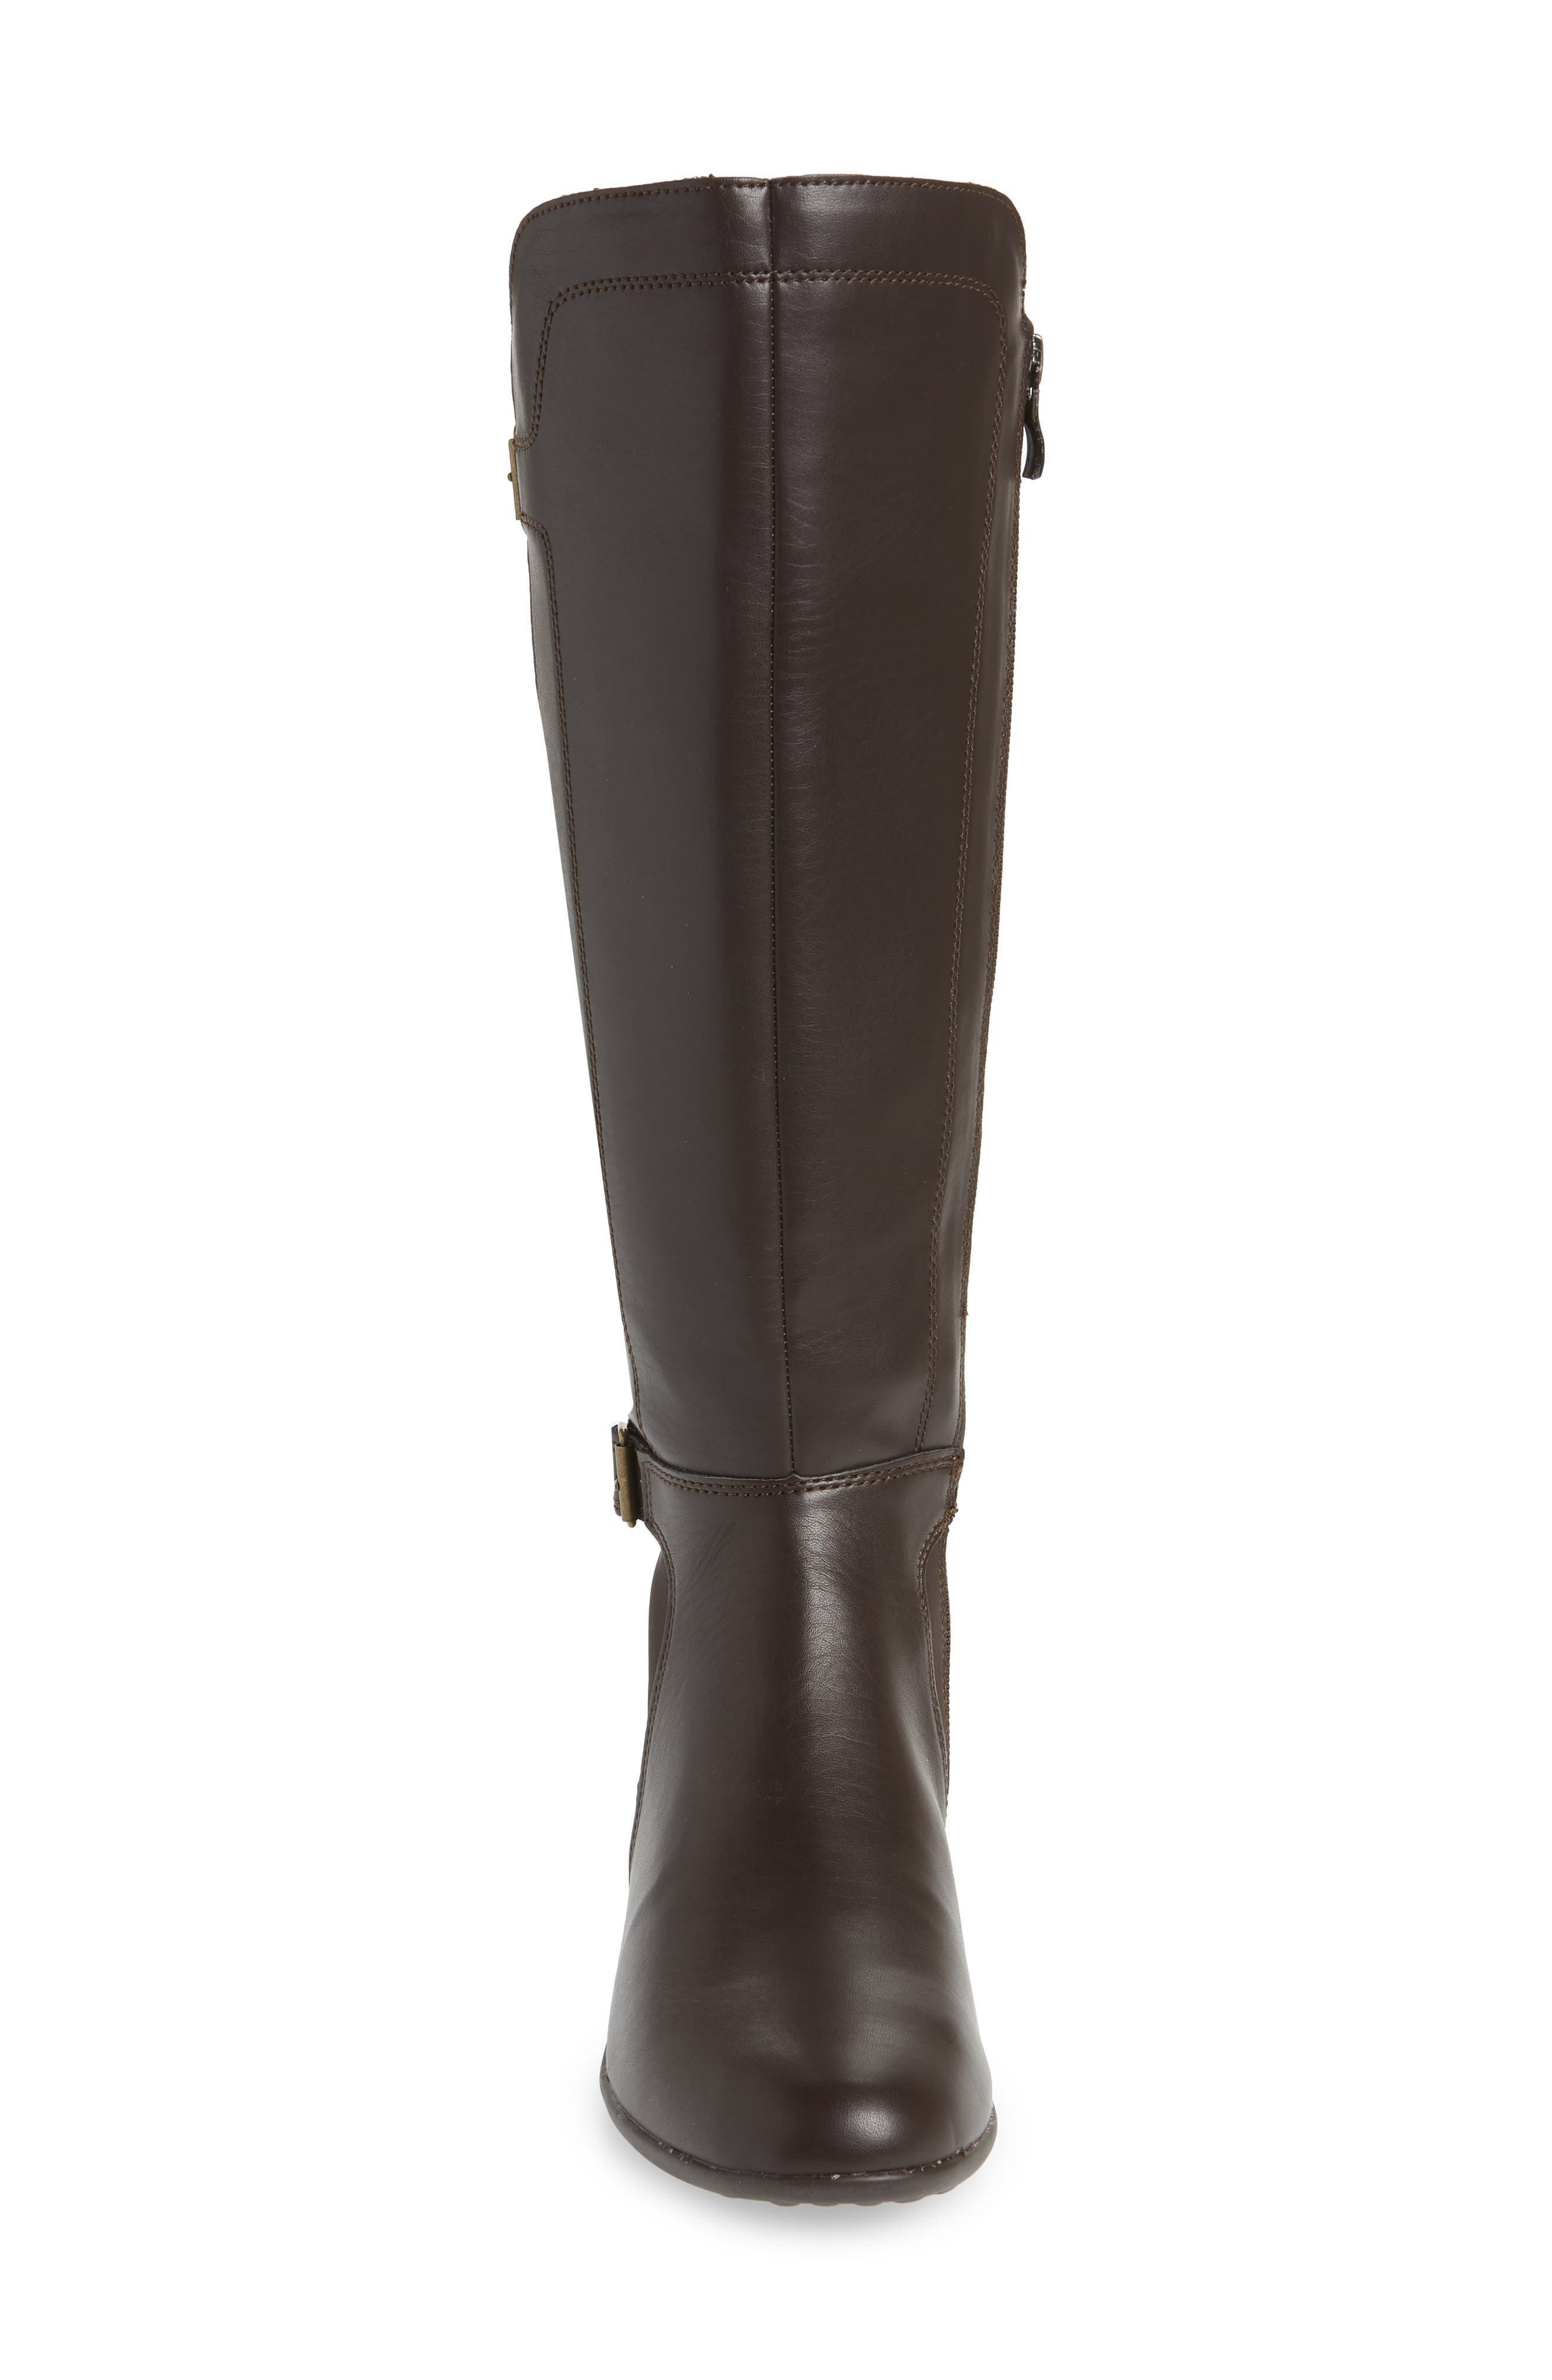 Bria Knee High Boot,                             Alternate thumbnail 4, color,                             DARK BROWN FAUX LEATHER